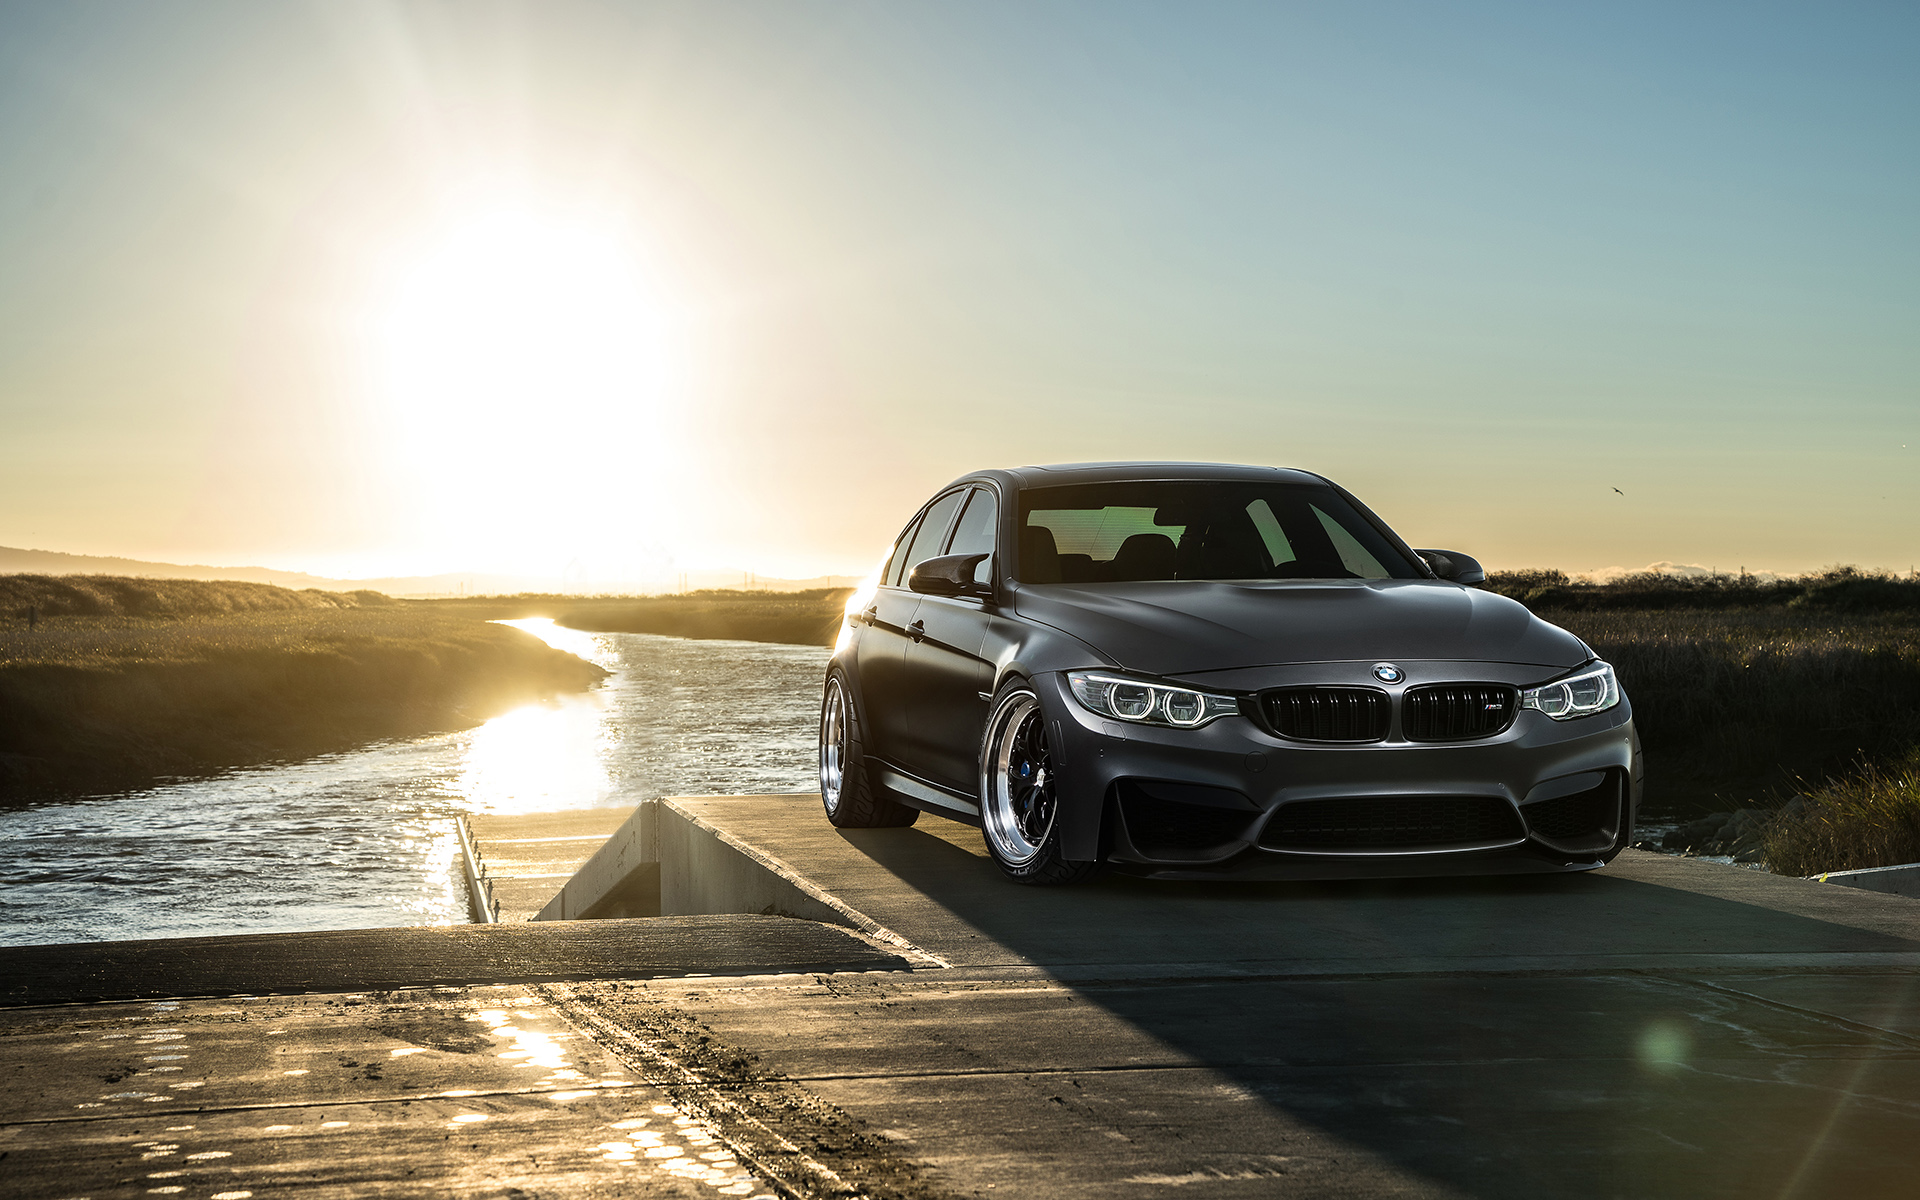 BMW F80 M3 Mode Carbon Wallpaper | HD Car Wallpapers | ID #5675